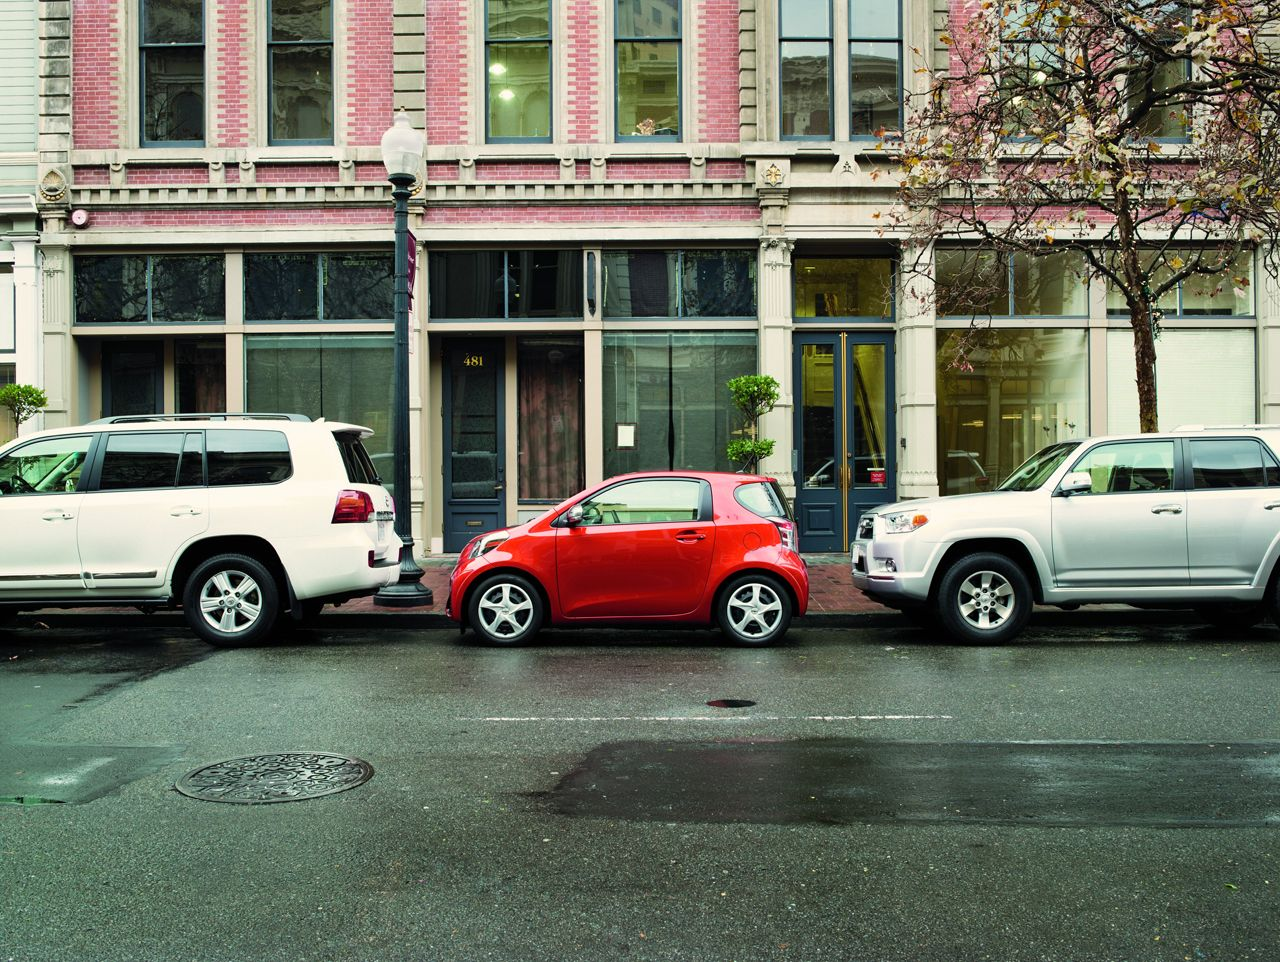 The 2013 Scion iQ allows you to park in the tiniest of